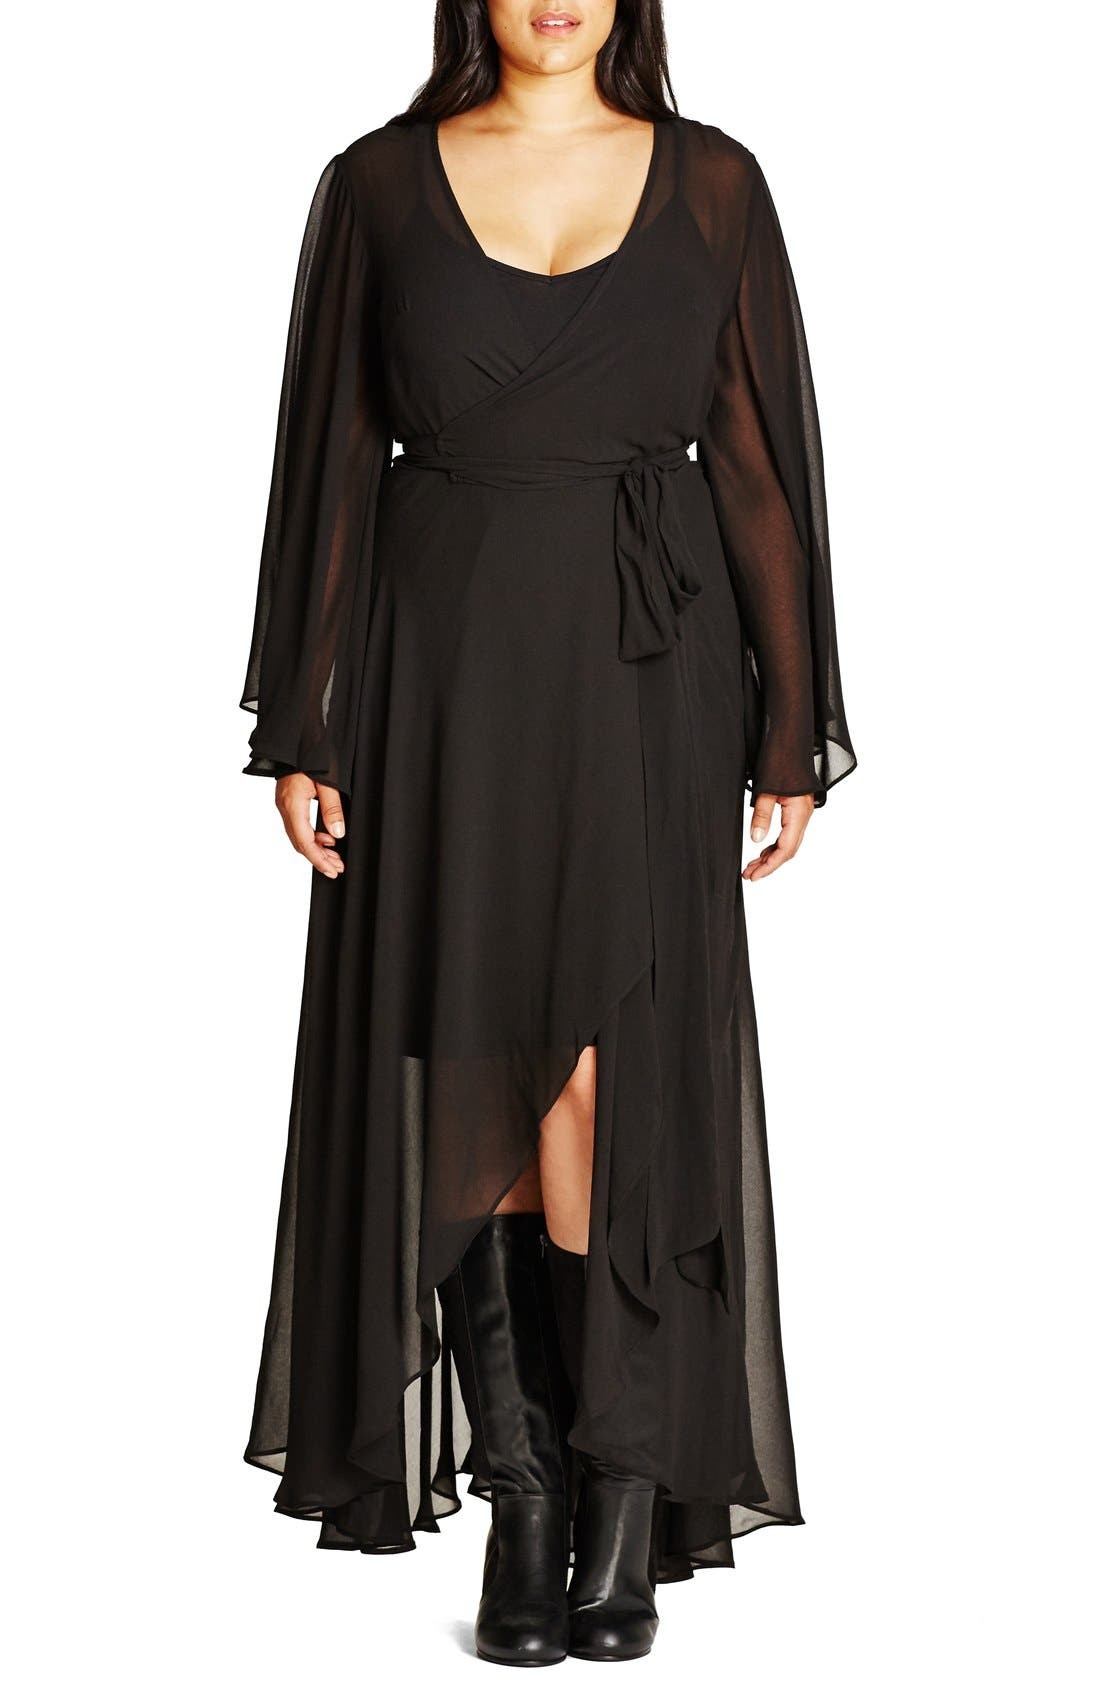 'Fleetwood' Maxi Dress,                             Main thumbnail 1, color,                             BLACK